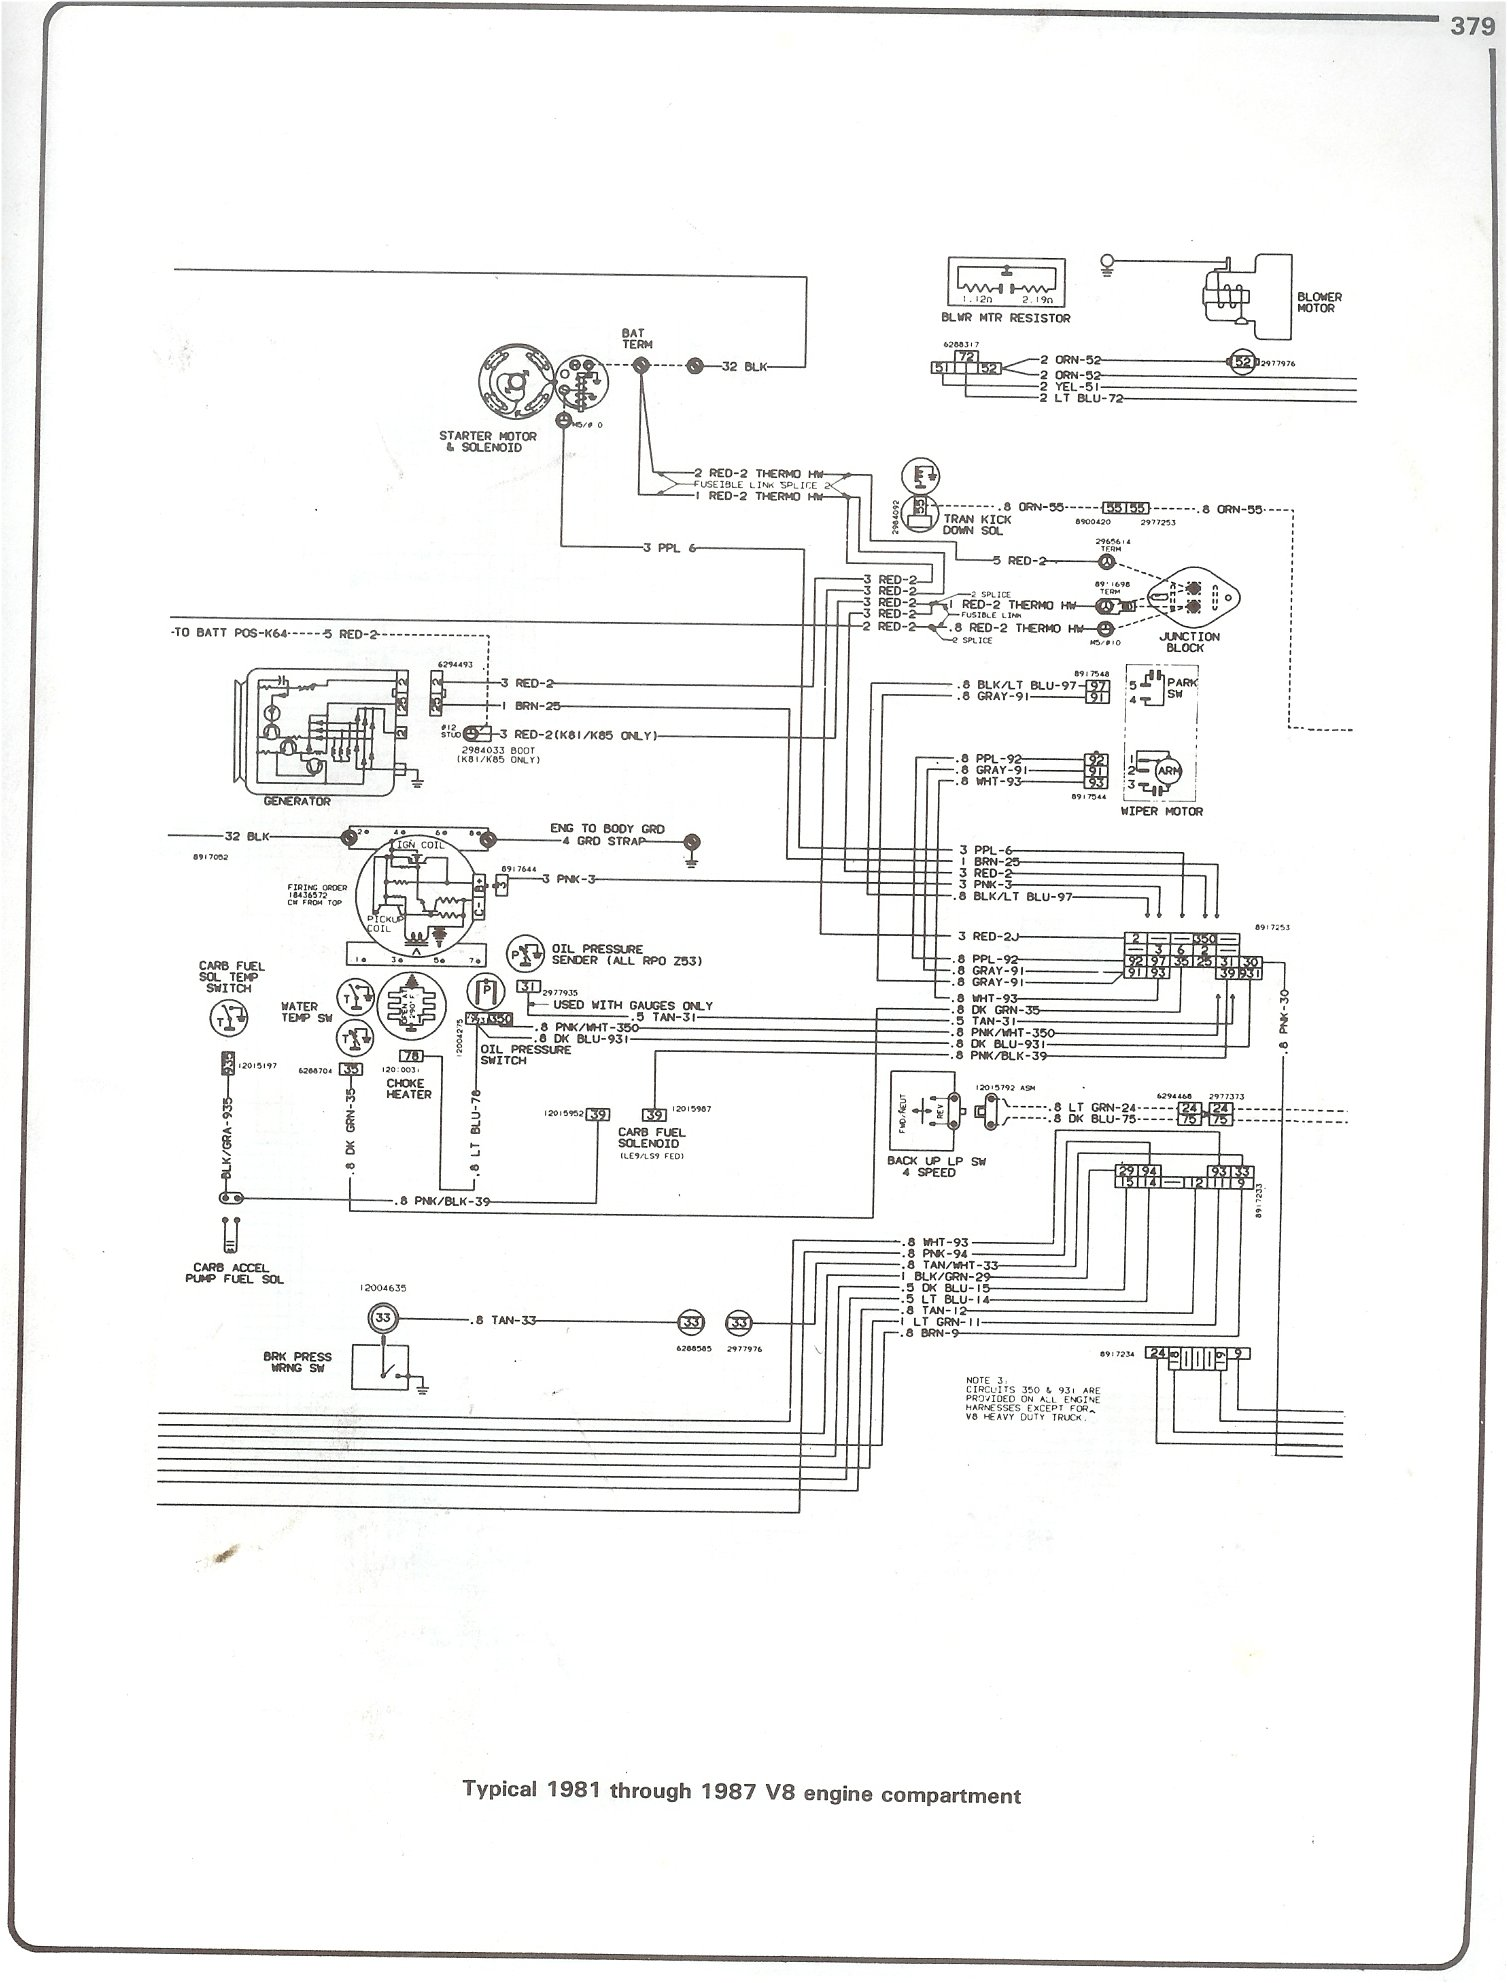 hight resolution of complete 73 87 wiring diagrams 1995 chevy astro fuse box location 2000 astro fuse box location